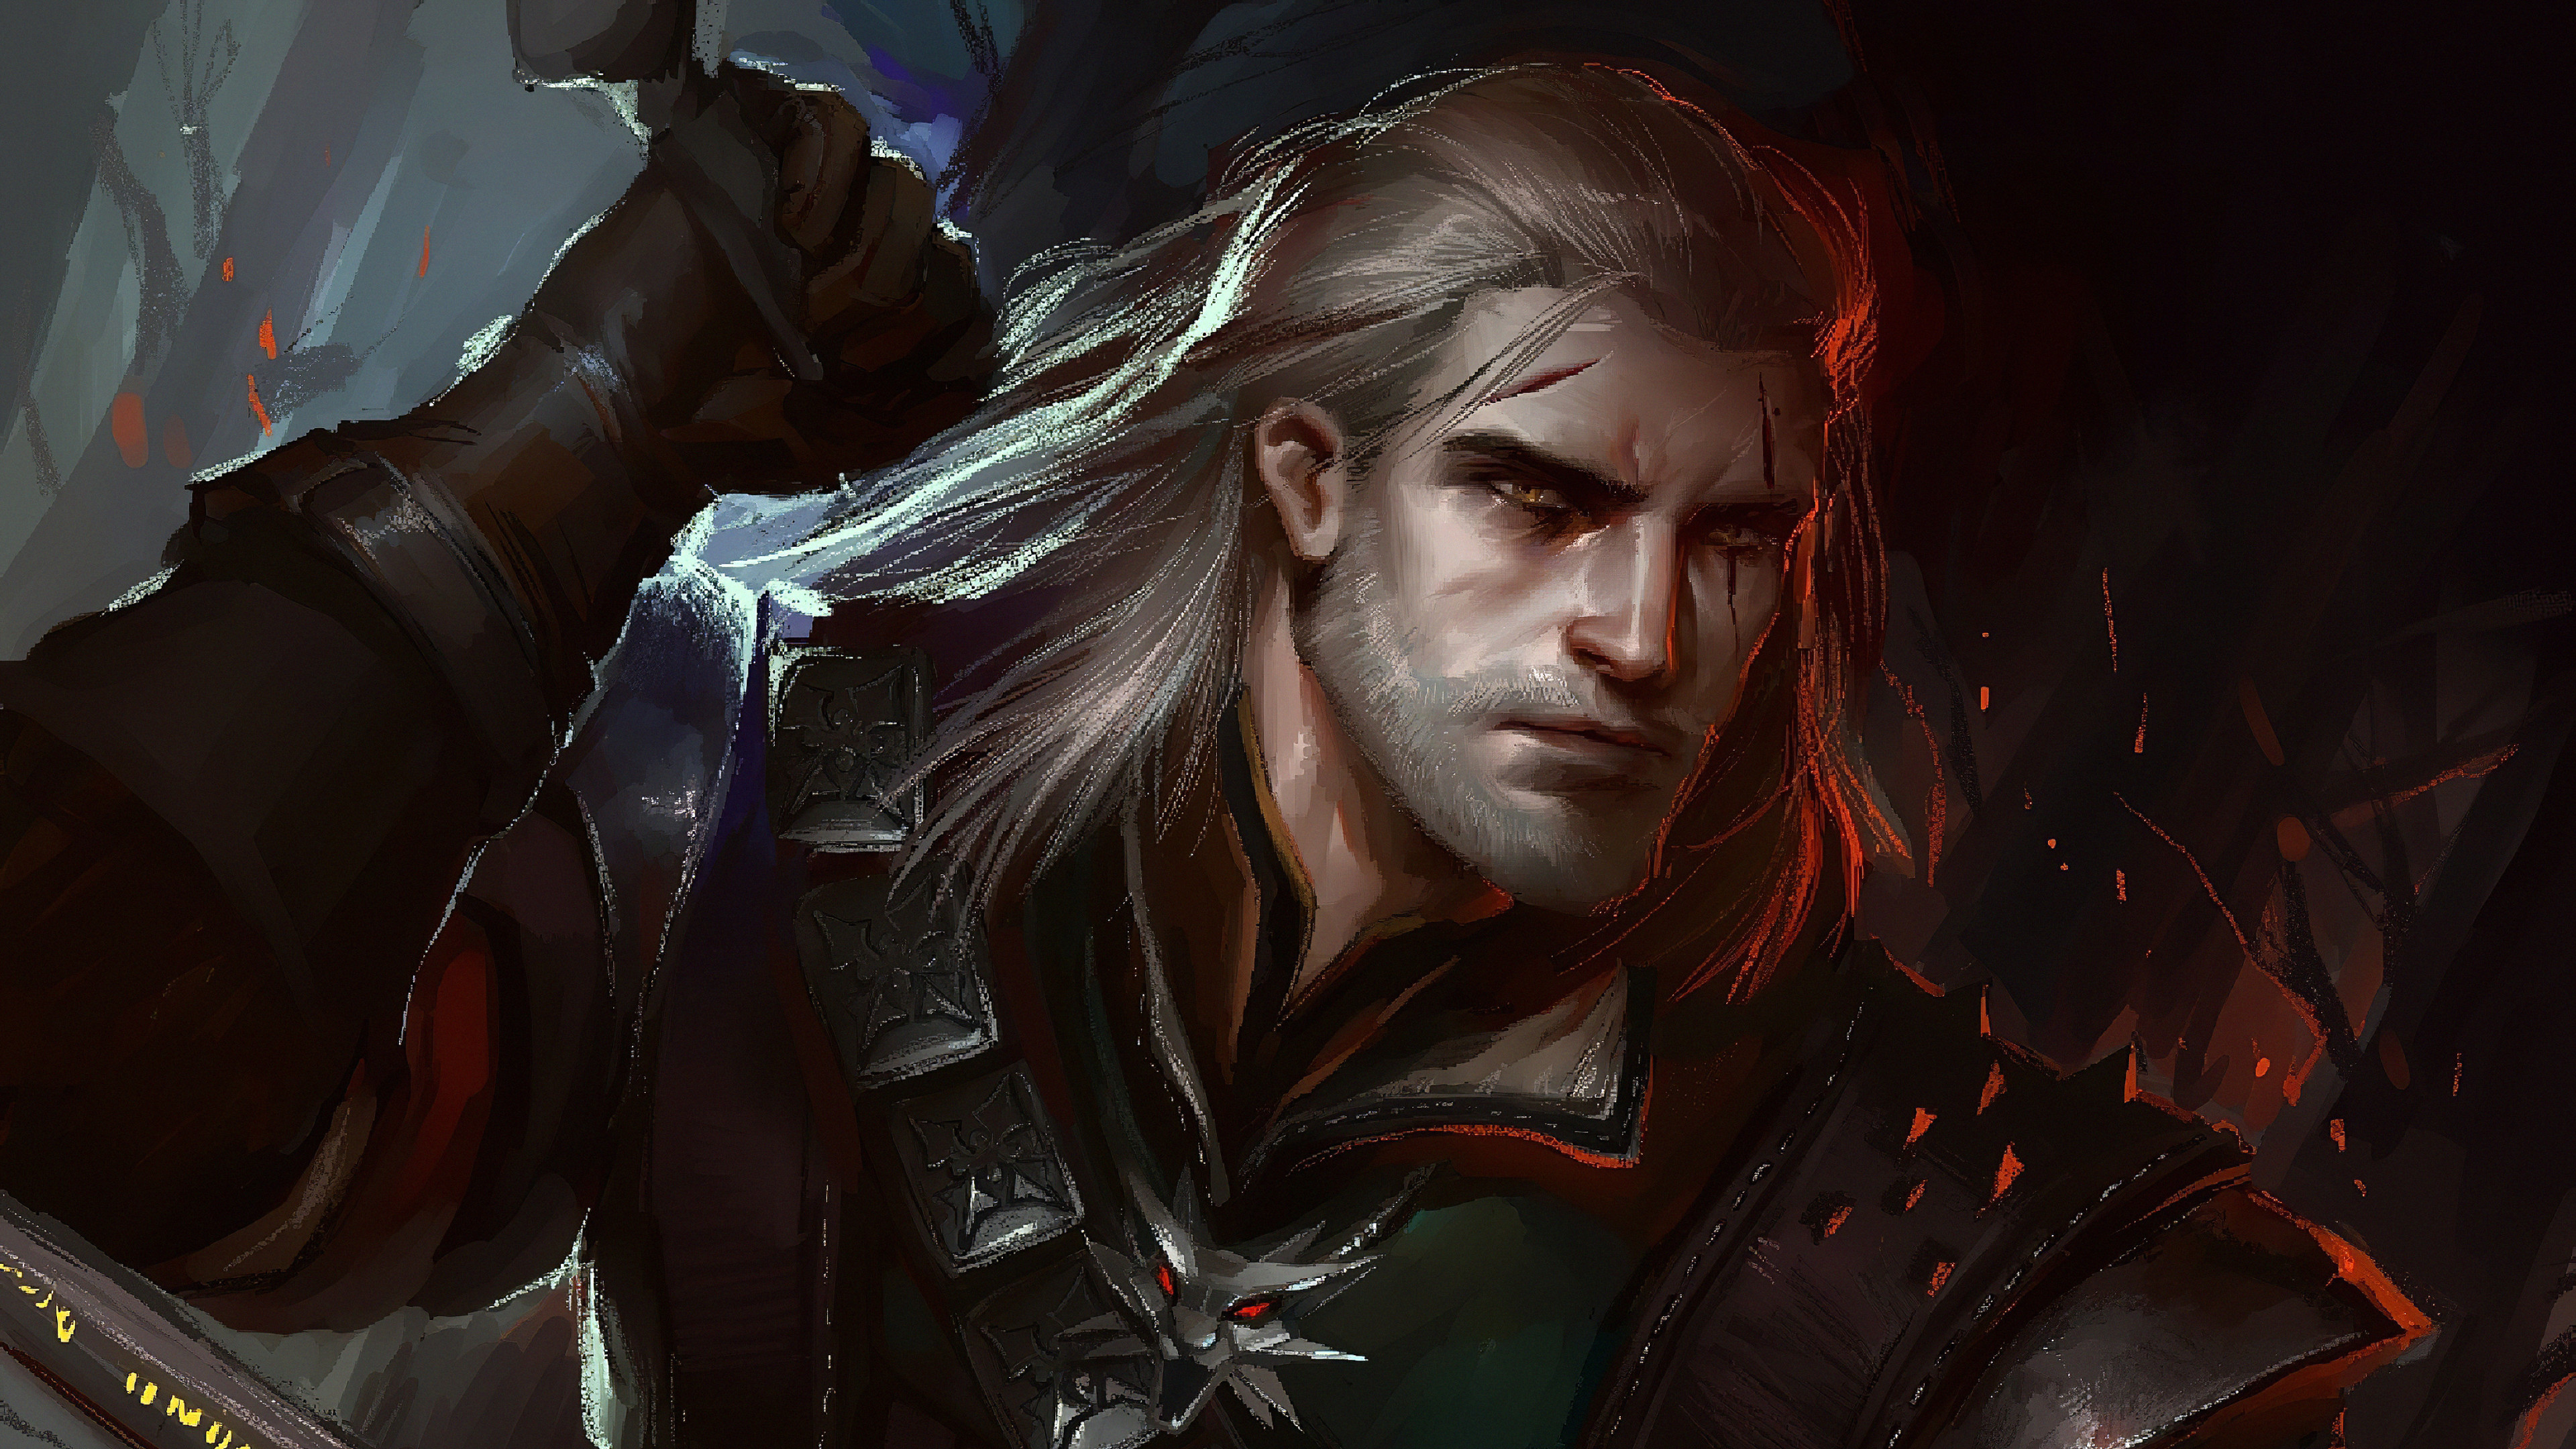 witcherart 3840x2160 1 - Witcher art -